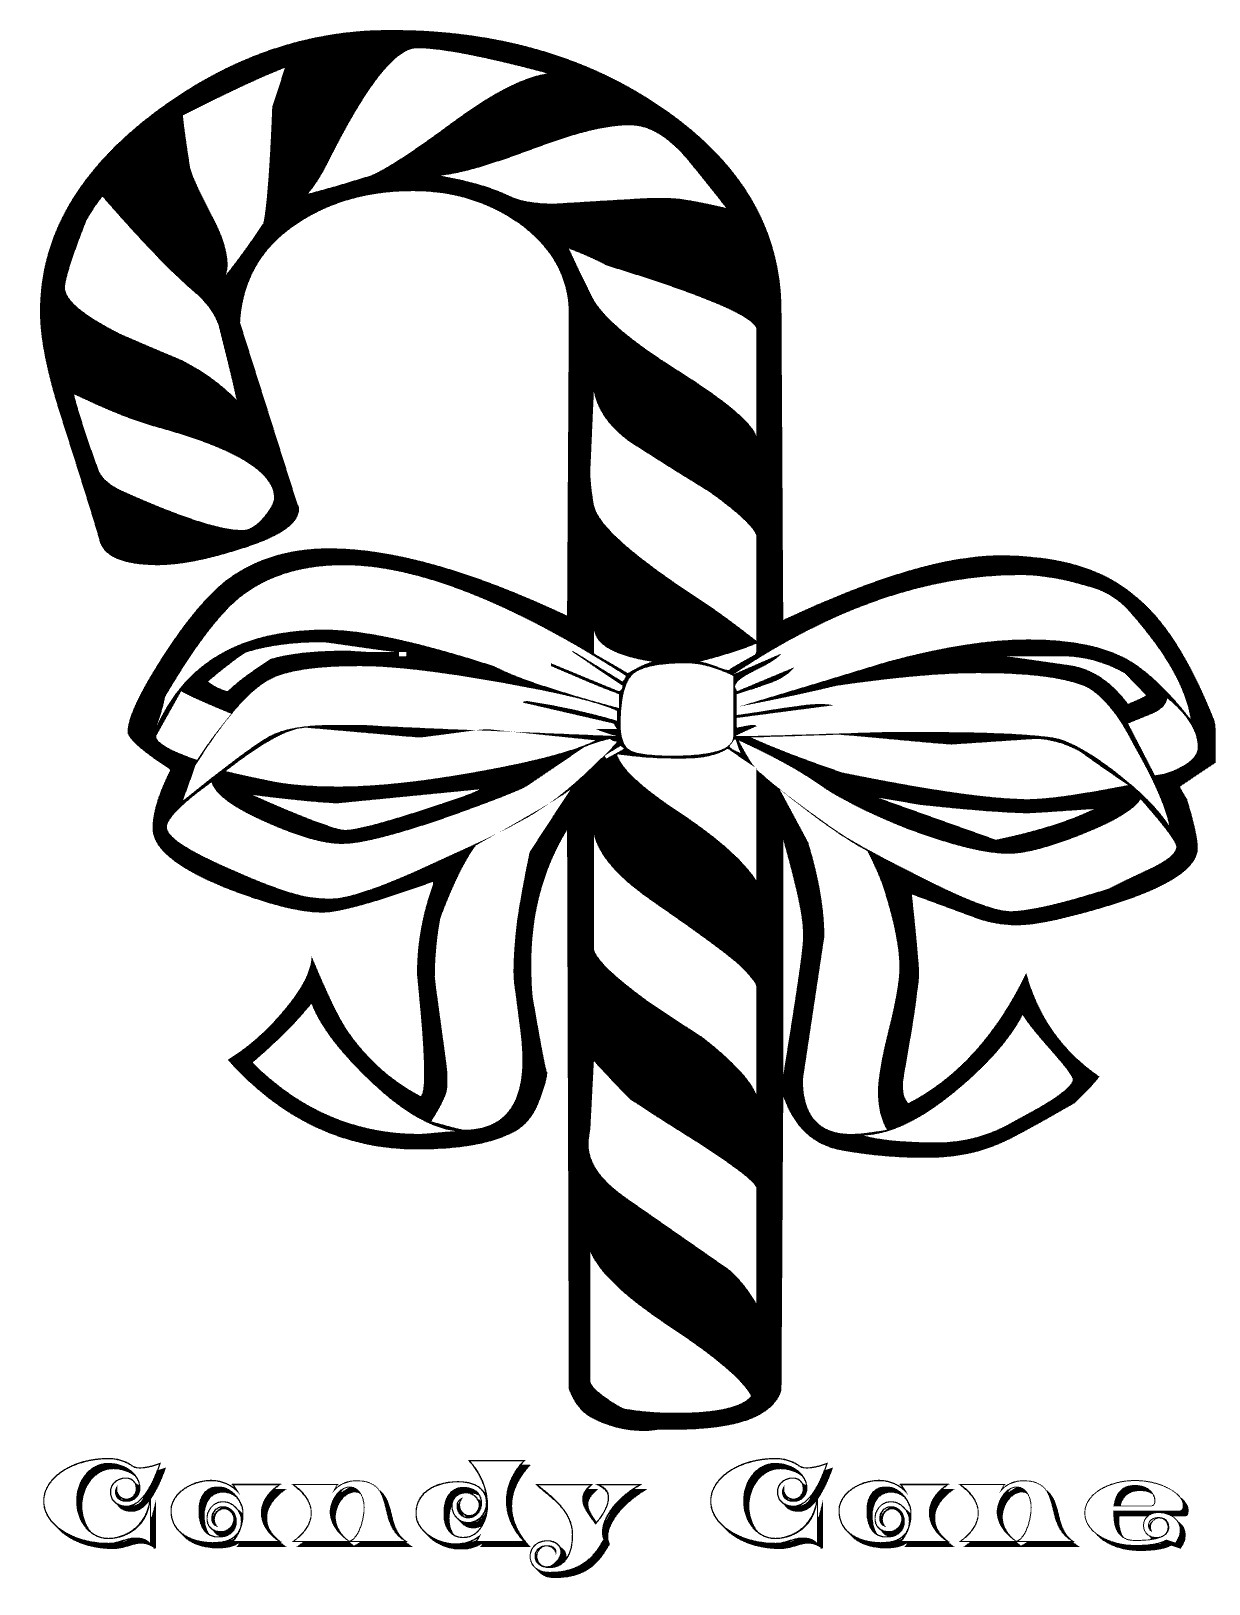 1240x1615 Free Printable Candy Cane Coloring Pages For Kids Canes